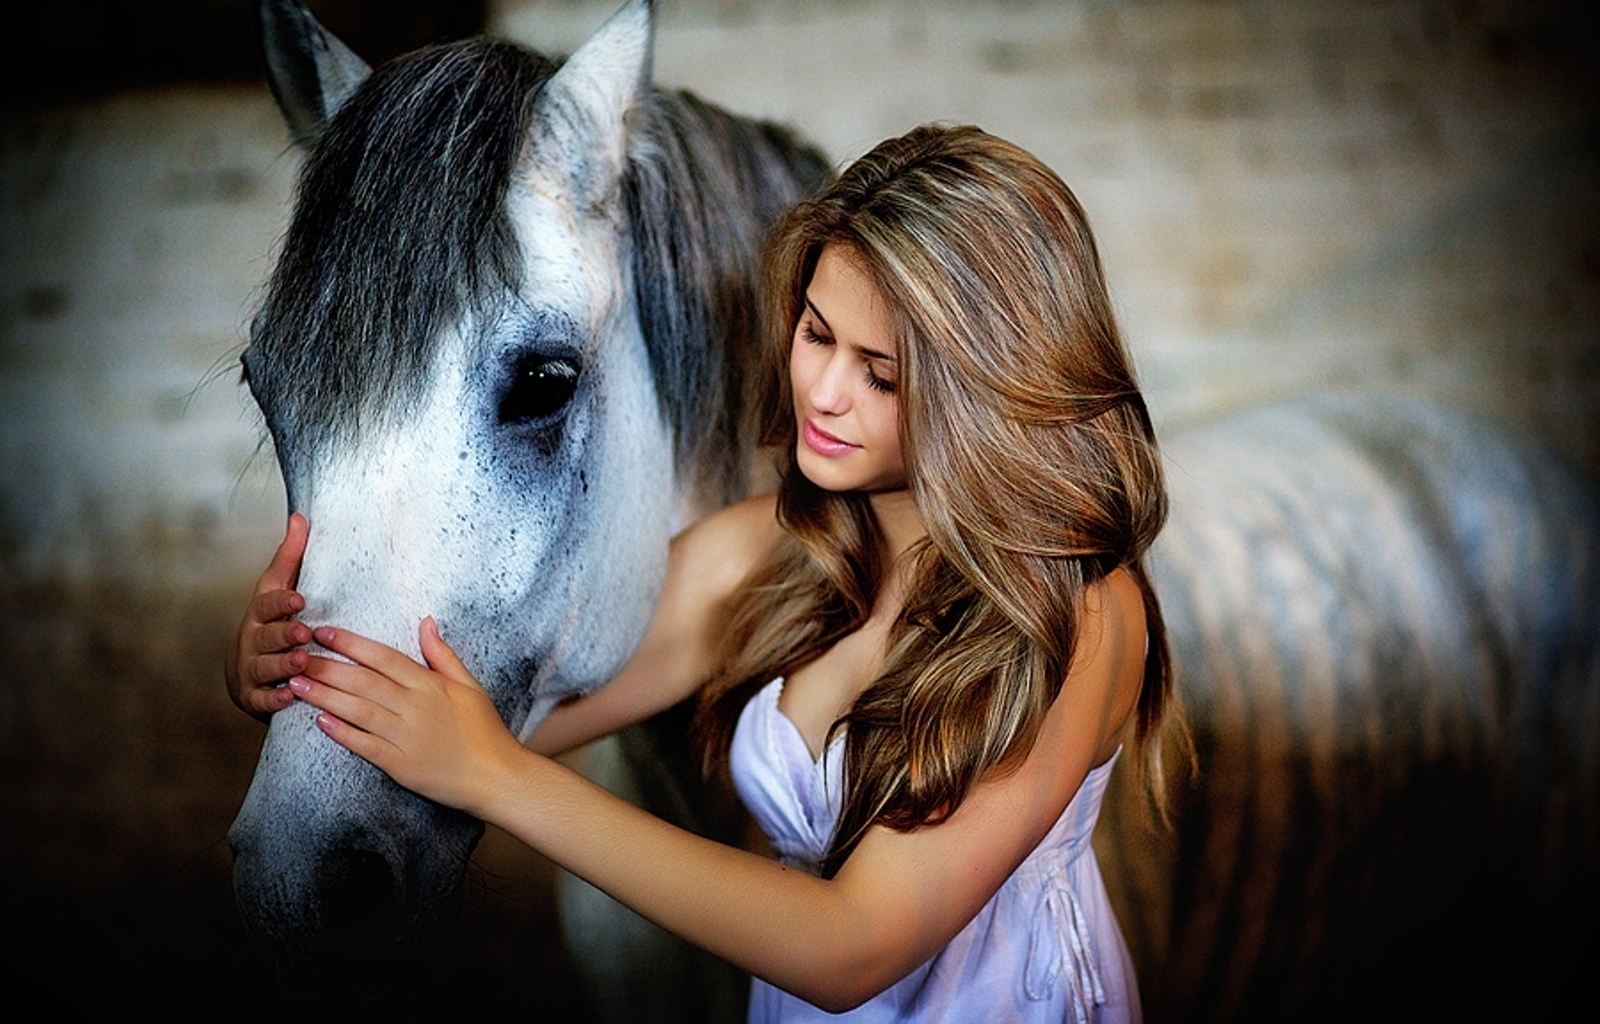 46583 download wallpaper People, Girls, Animals, Horses screensavers and pictures for free